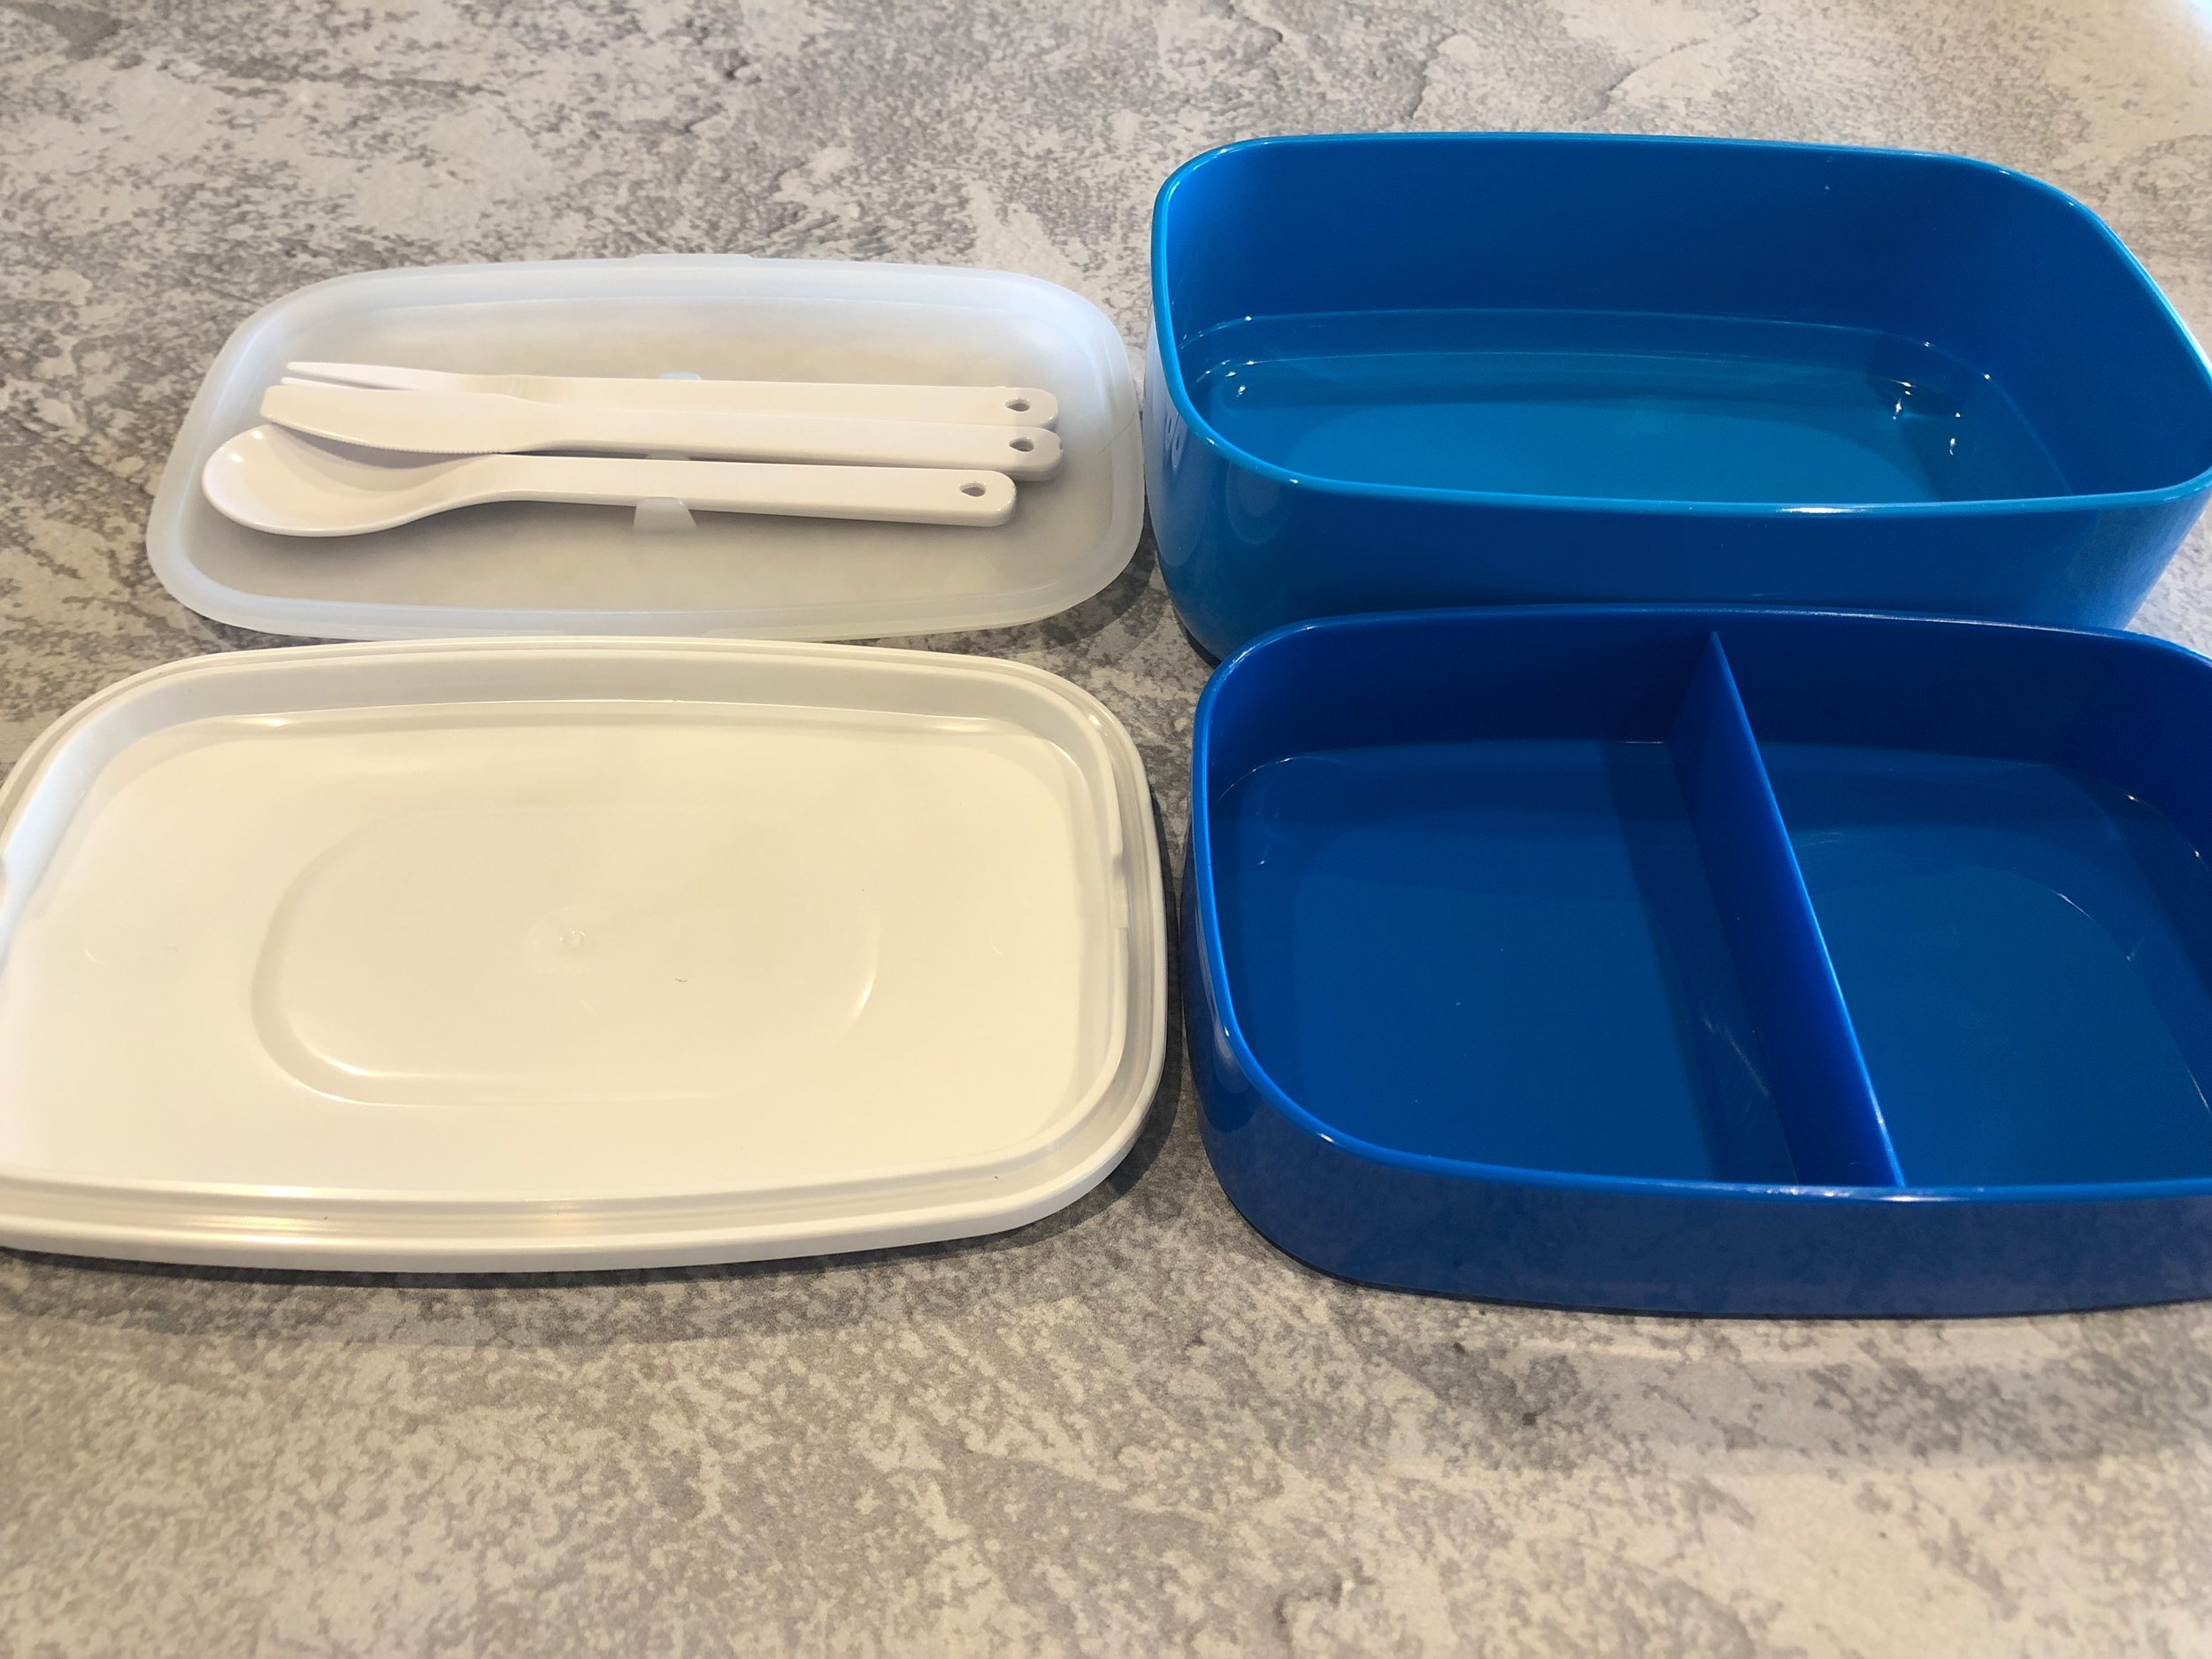 Bentgo Box Back to School Lunch Container for Keto and Low Carb Lunches